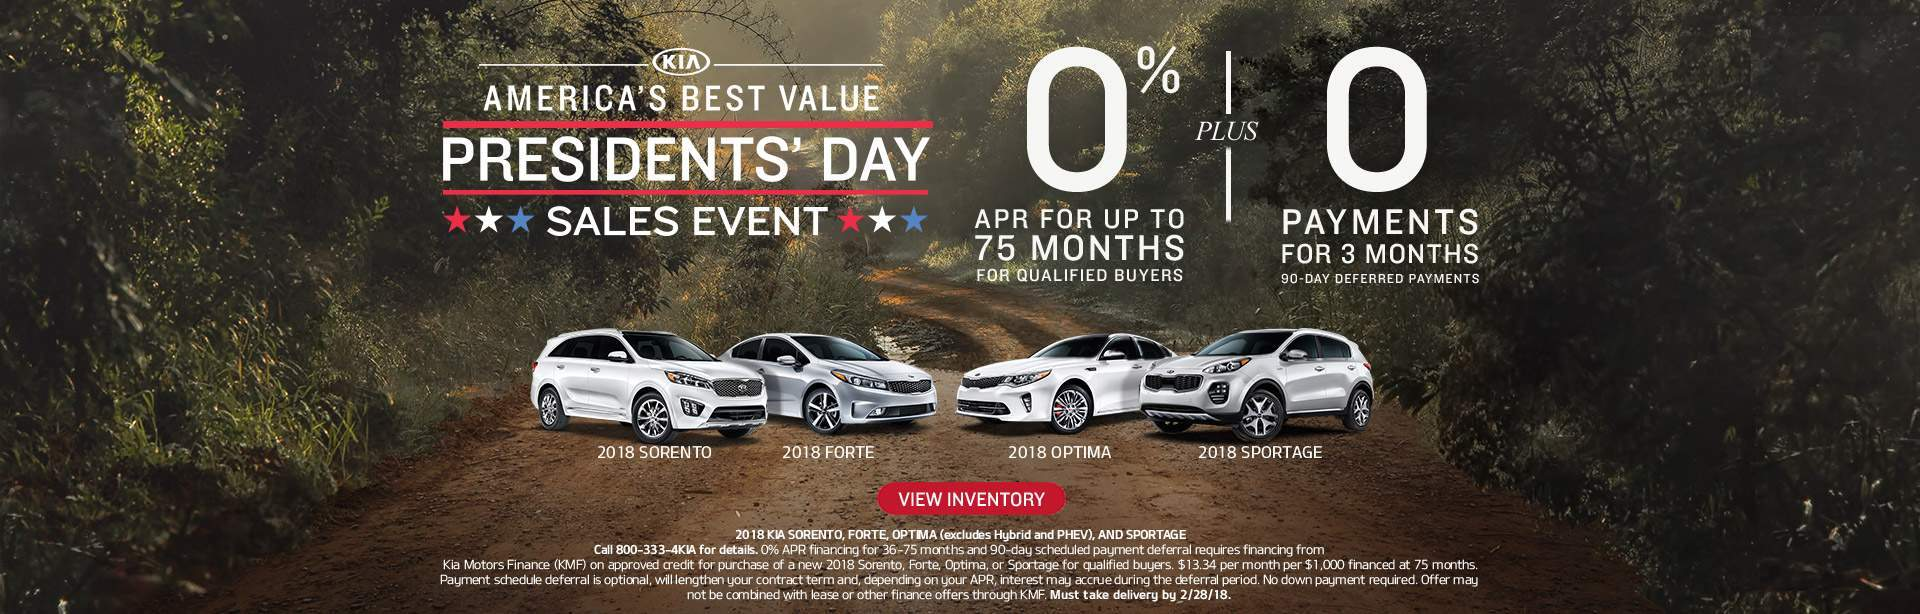 Presidents Day Sales Event at Moritz Kia Hurst (Mid-cities)